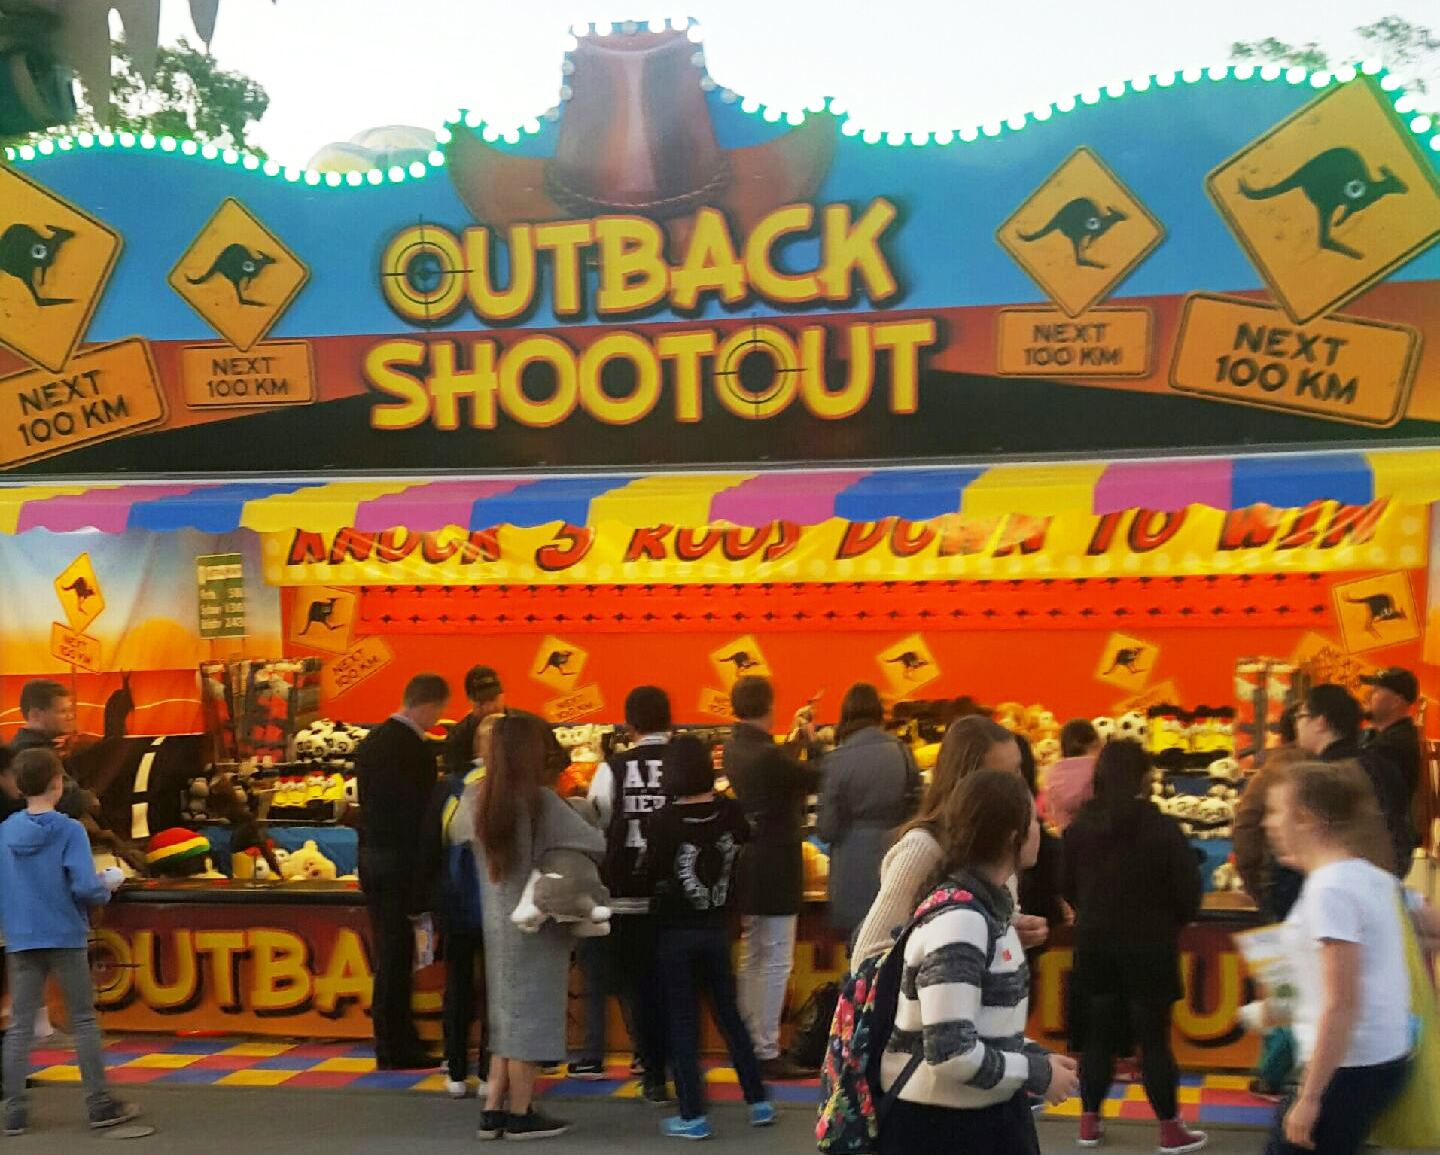 Shooting gallery with outback theme